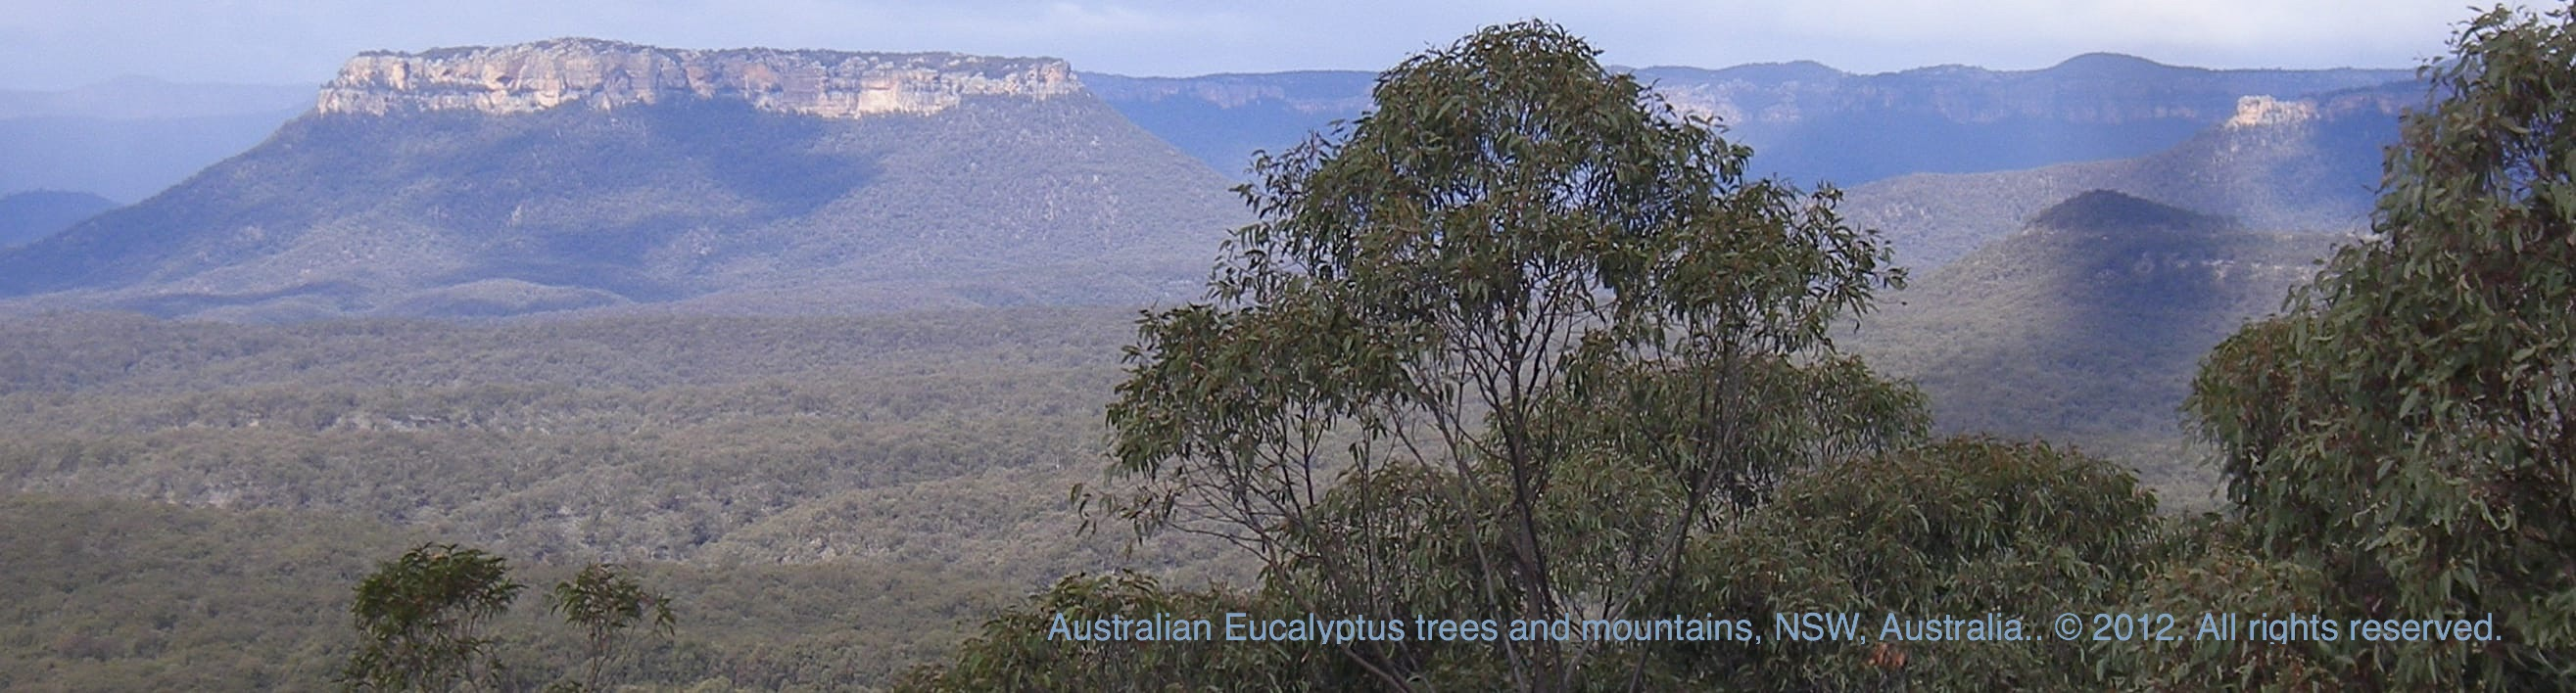 Picture - Australian Eucalyptus trees & Mountains in the Outback. ©.